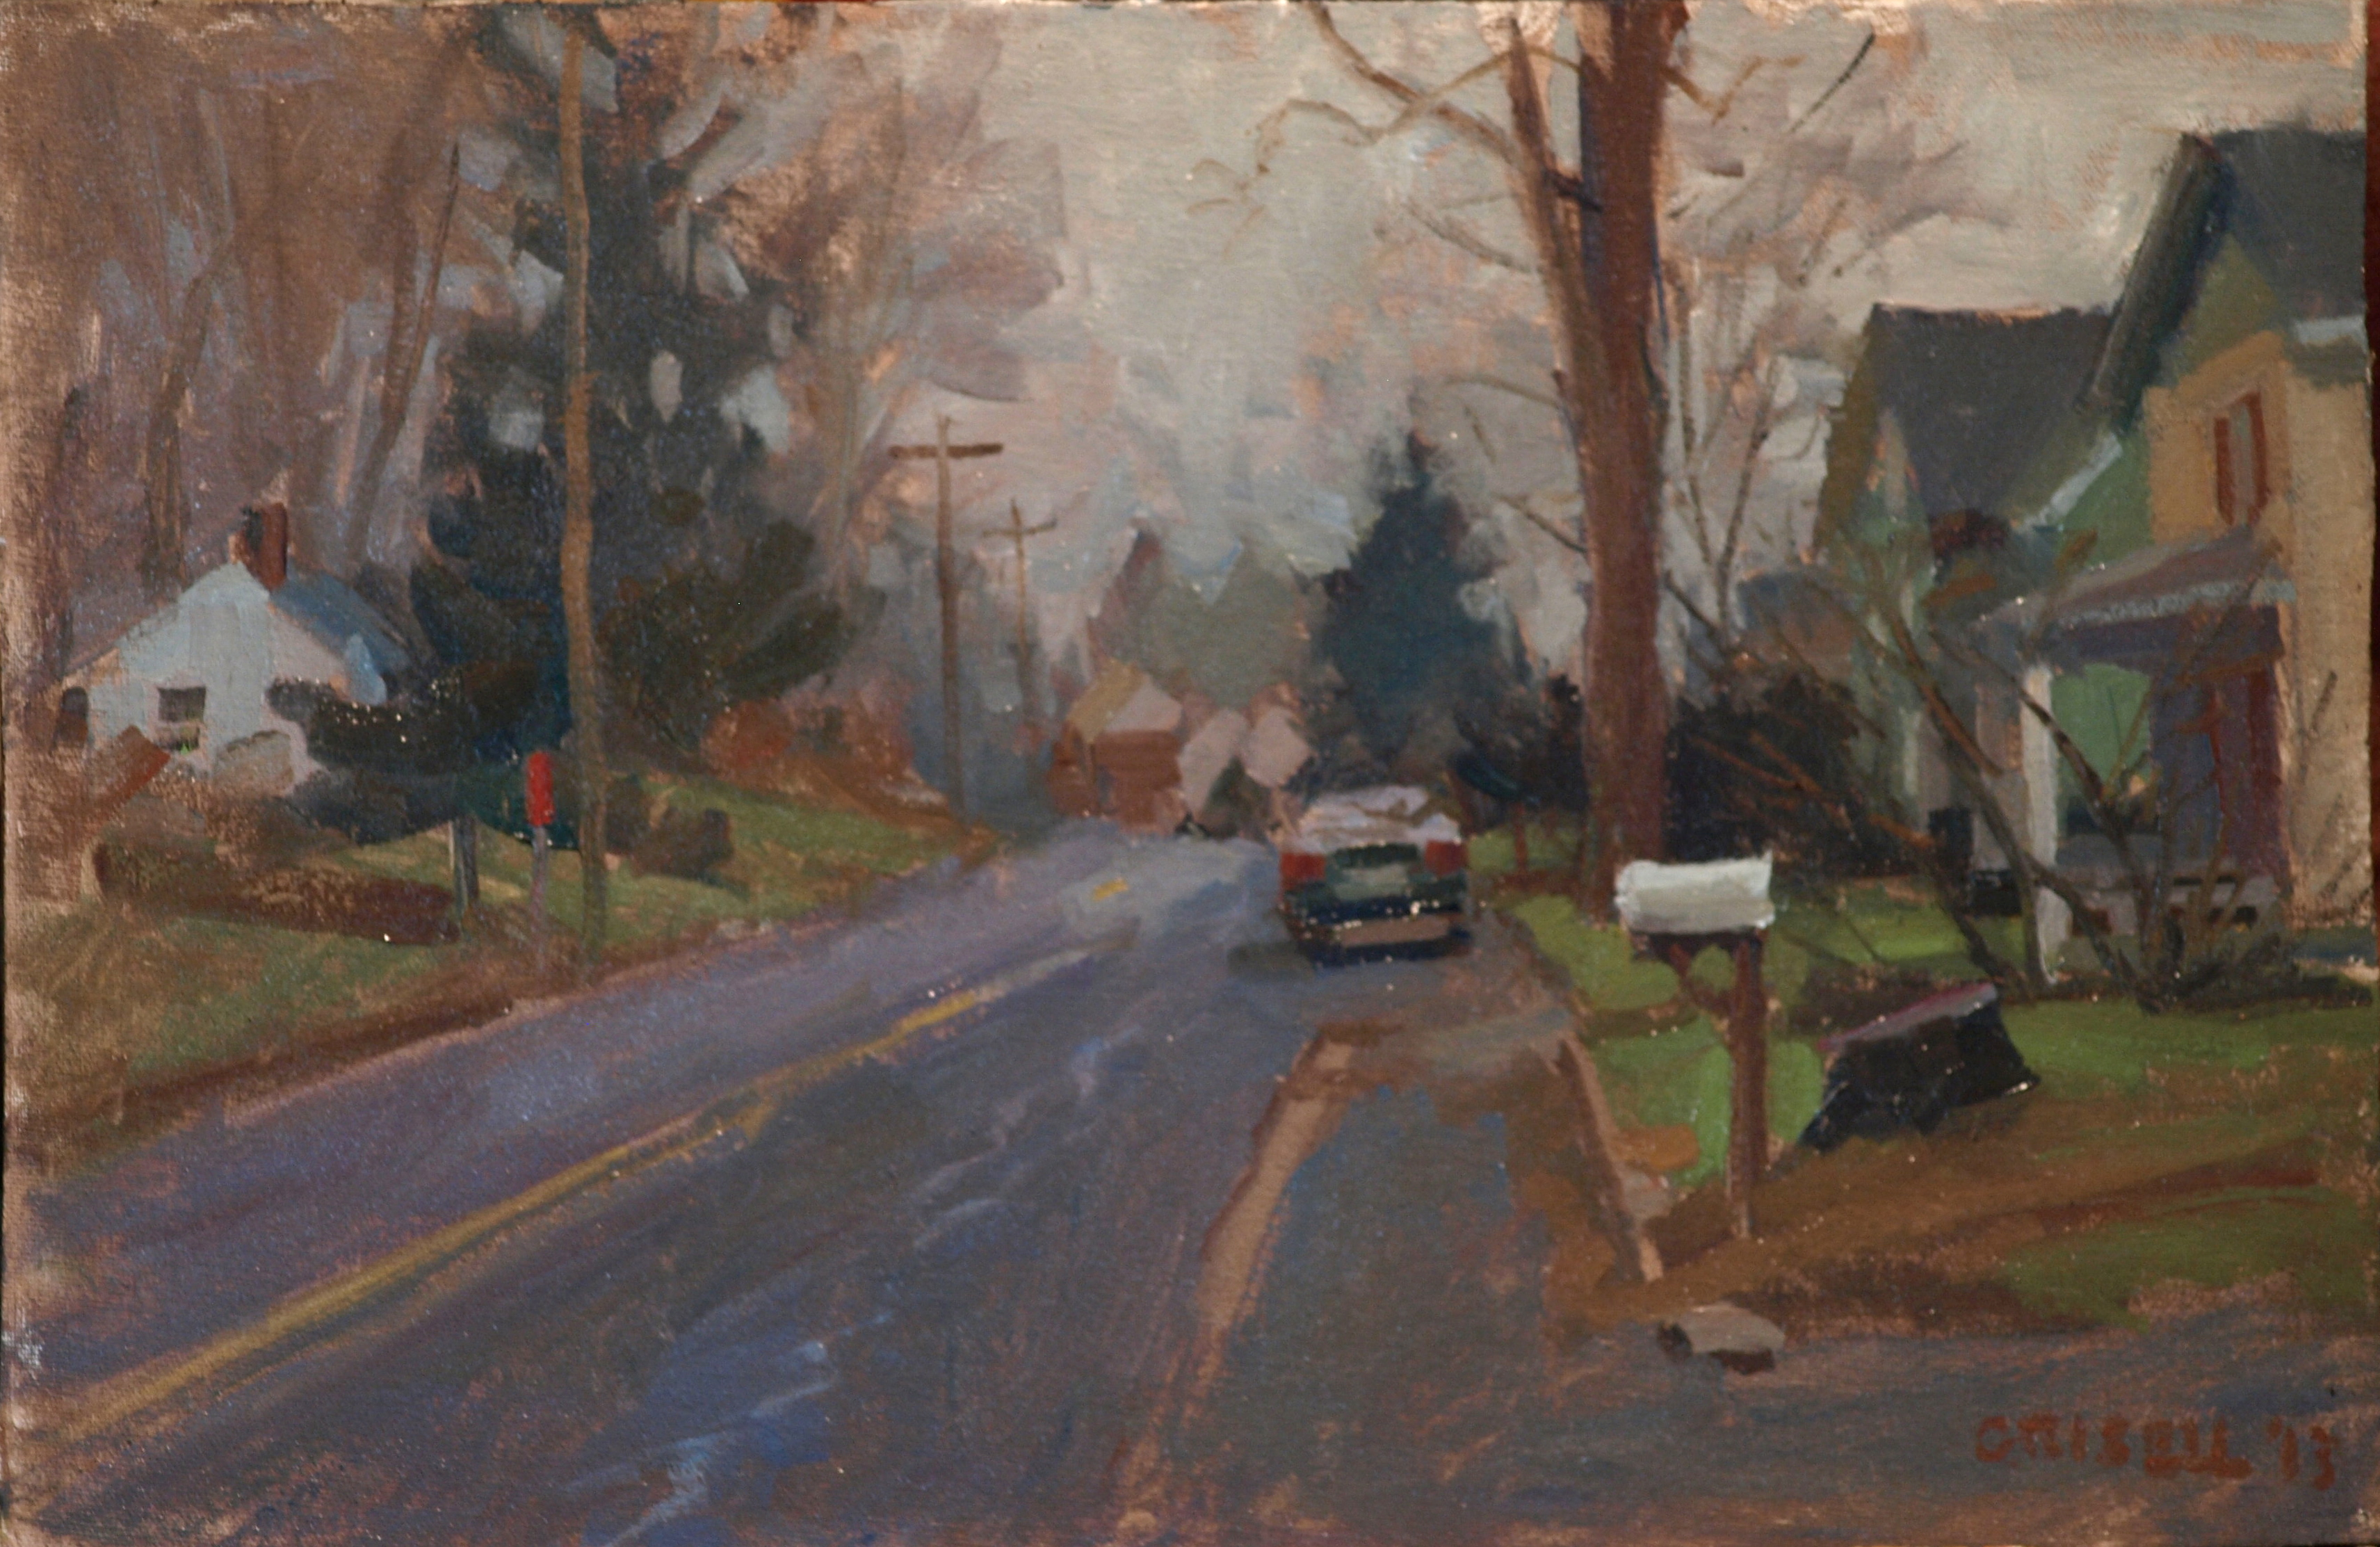 Mailbox, Oil on Canvas on Panel, 12 x 18 Inches, by Susan Grisell, $275